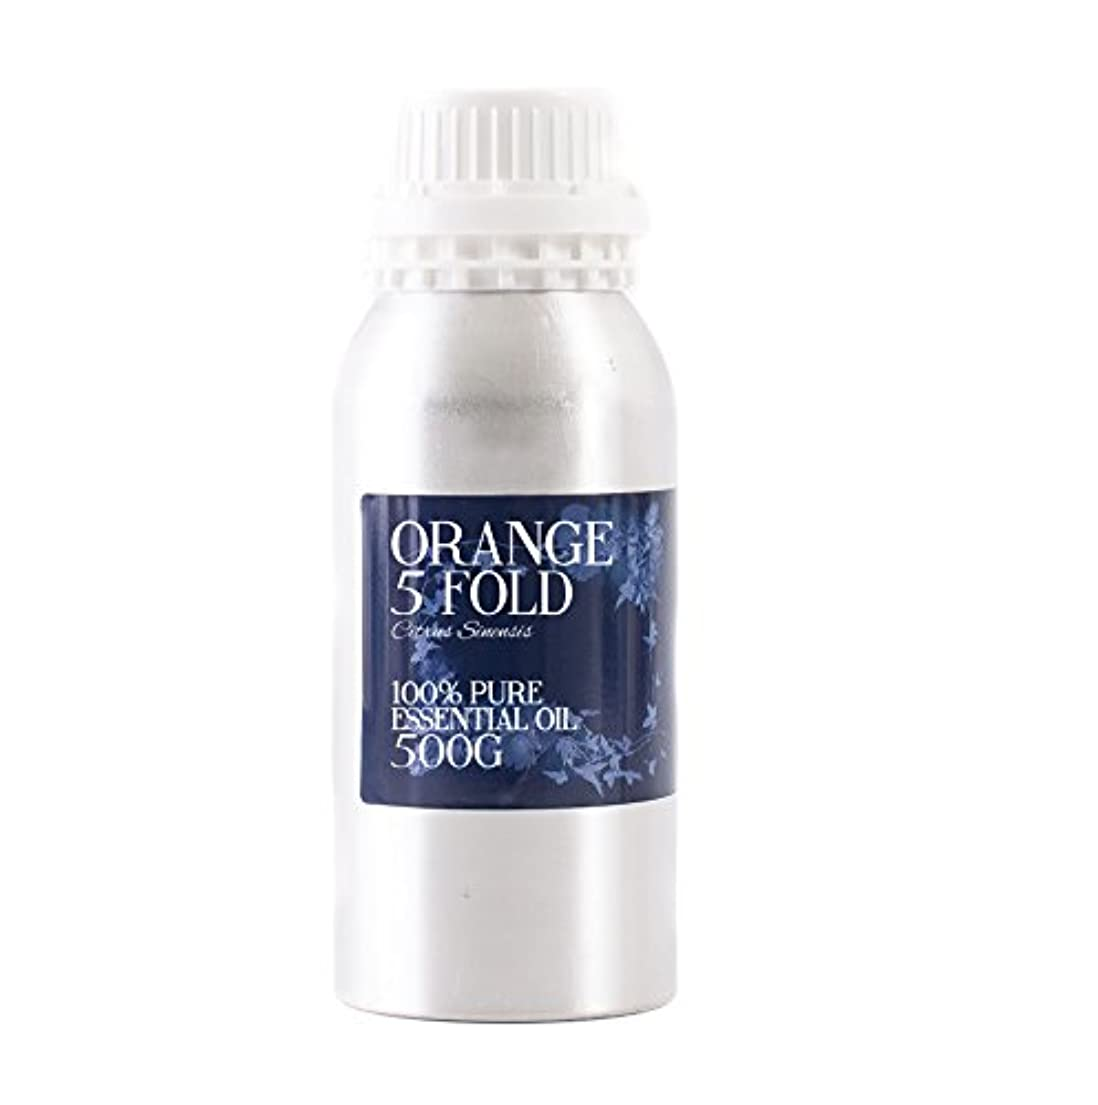 良性おかしいグラマーMystic Moments | Orange 5 Fold Essential Oil - 500g - 100% Pure